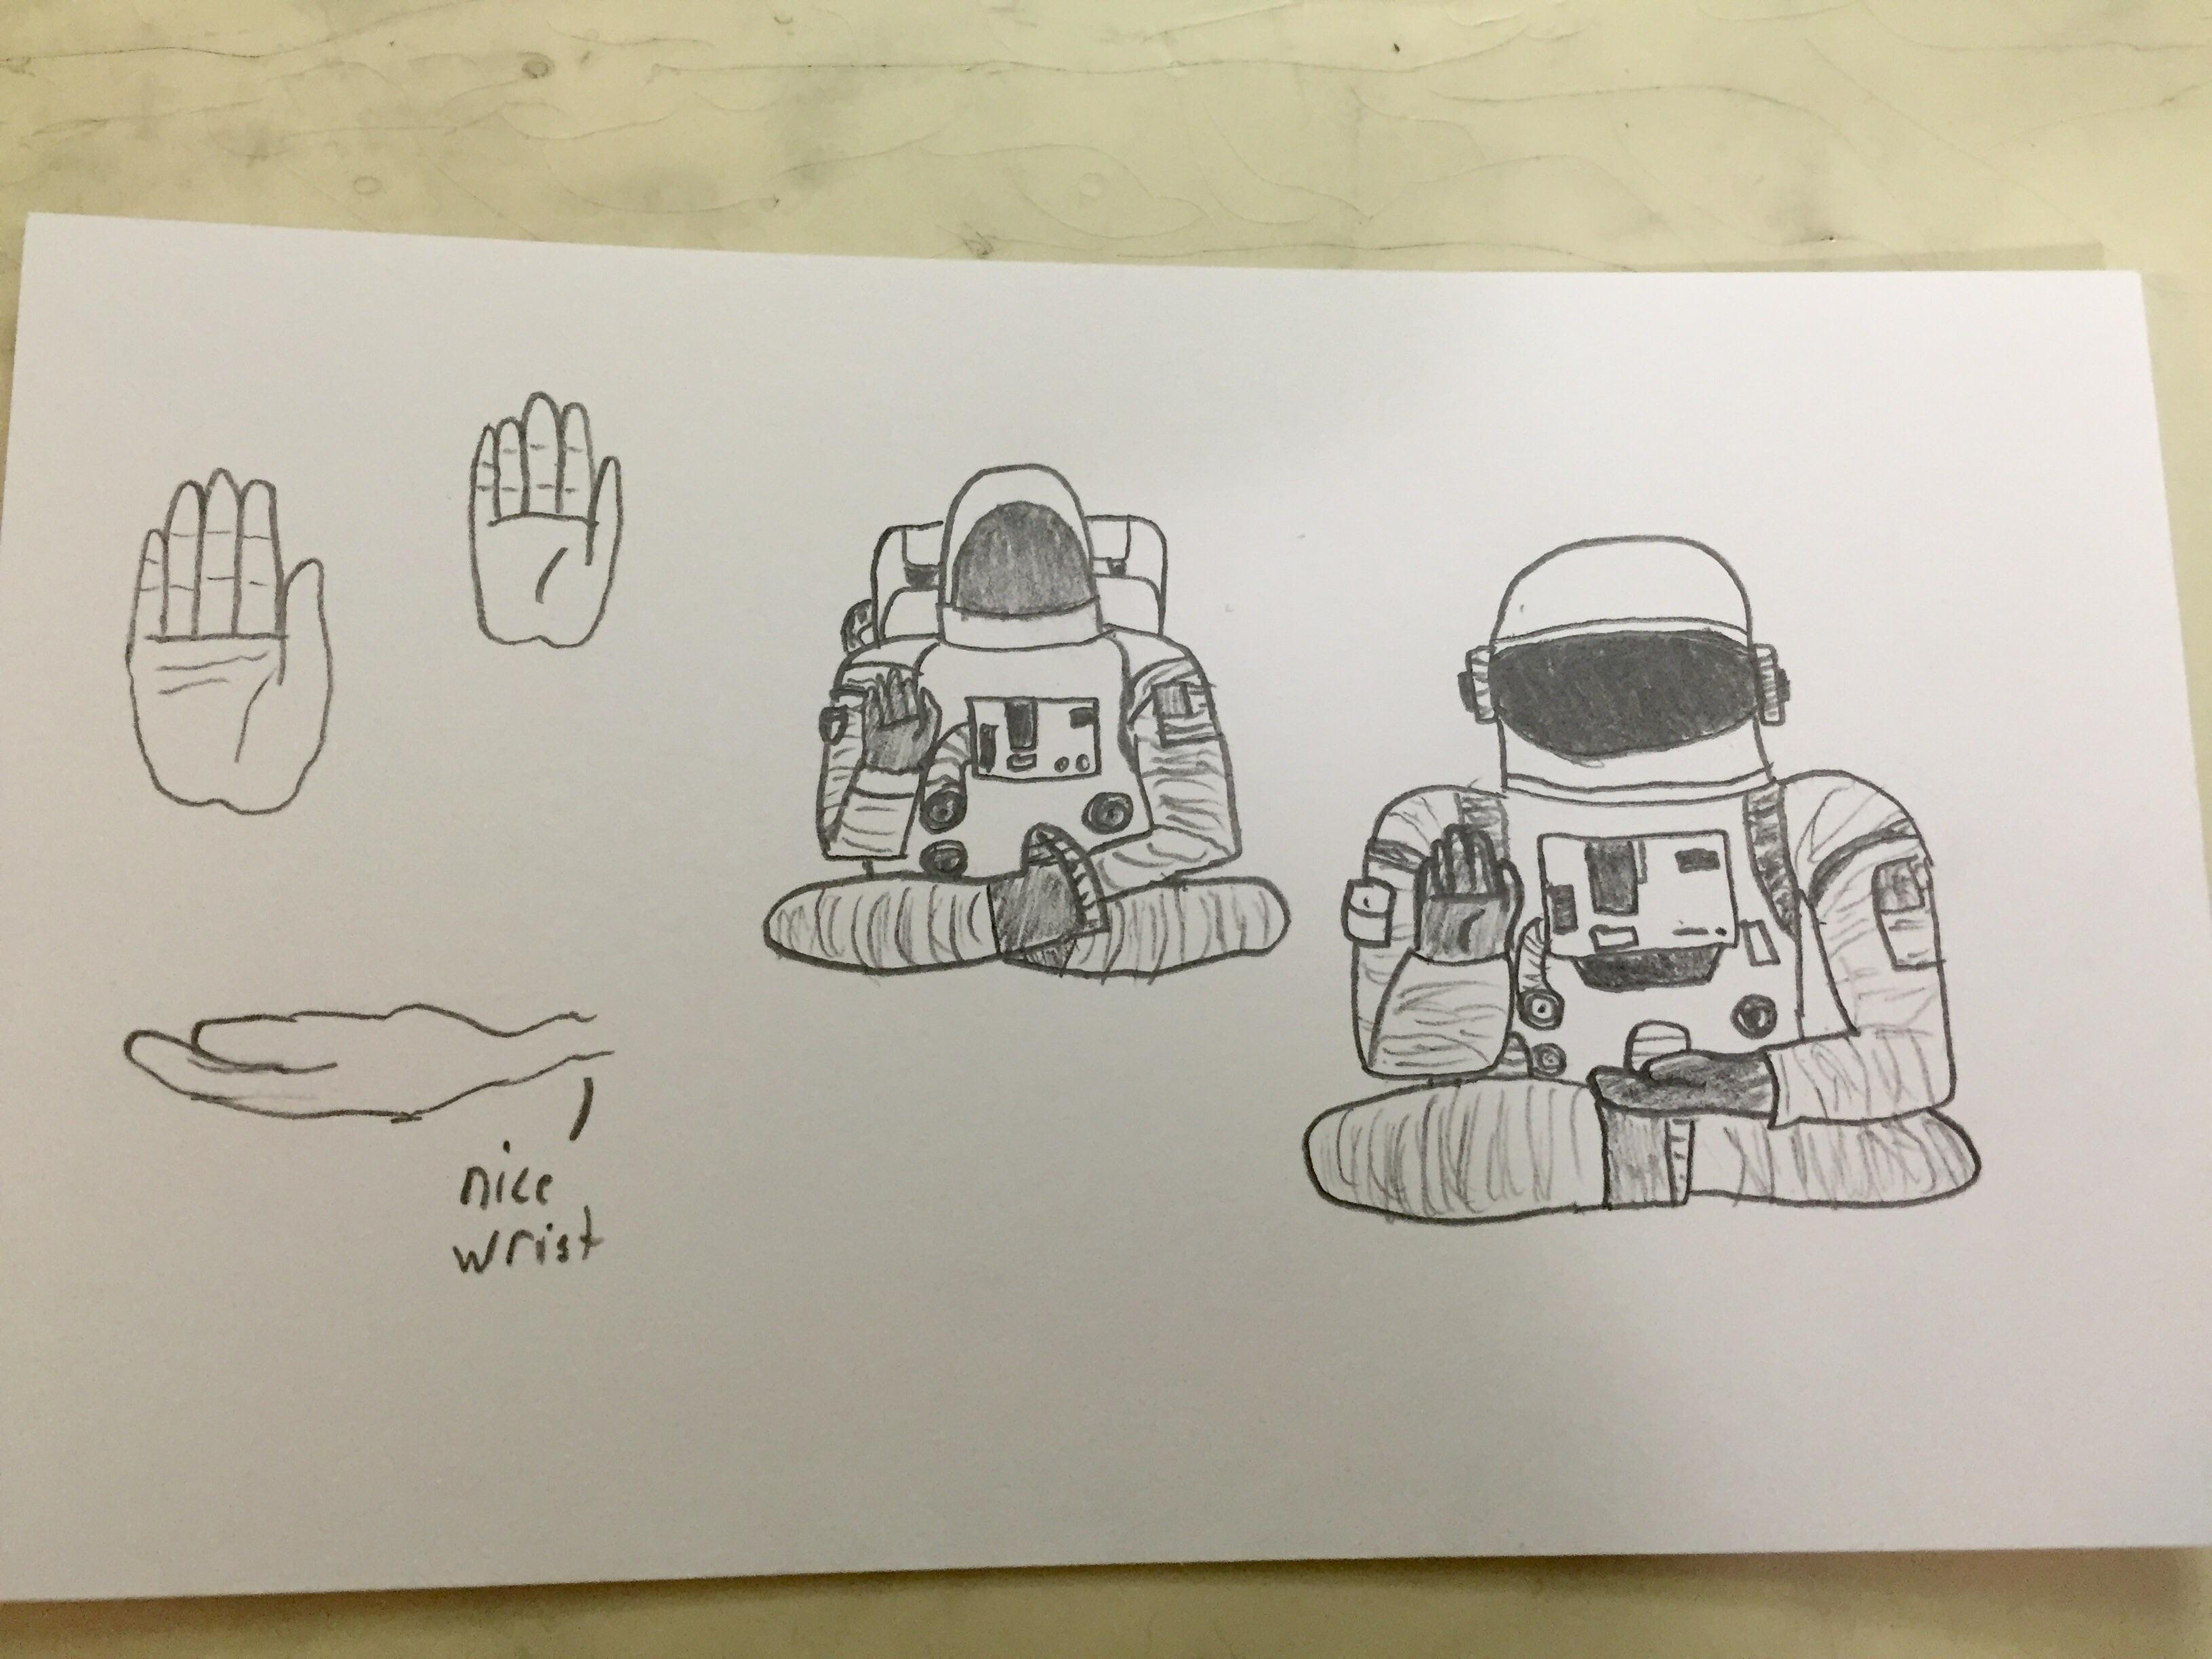 3264x2448 Trying To Draw An Astronaut In A Sitting Buddha Style Position